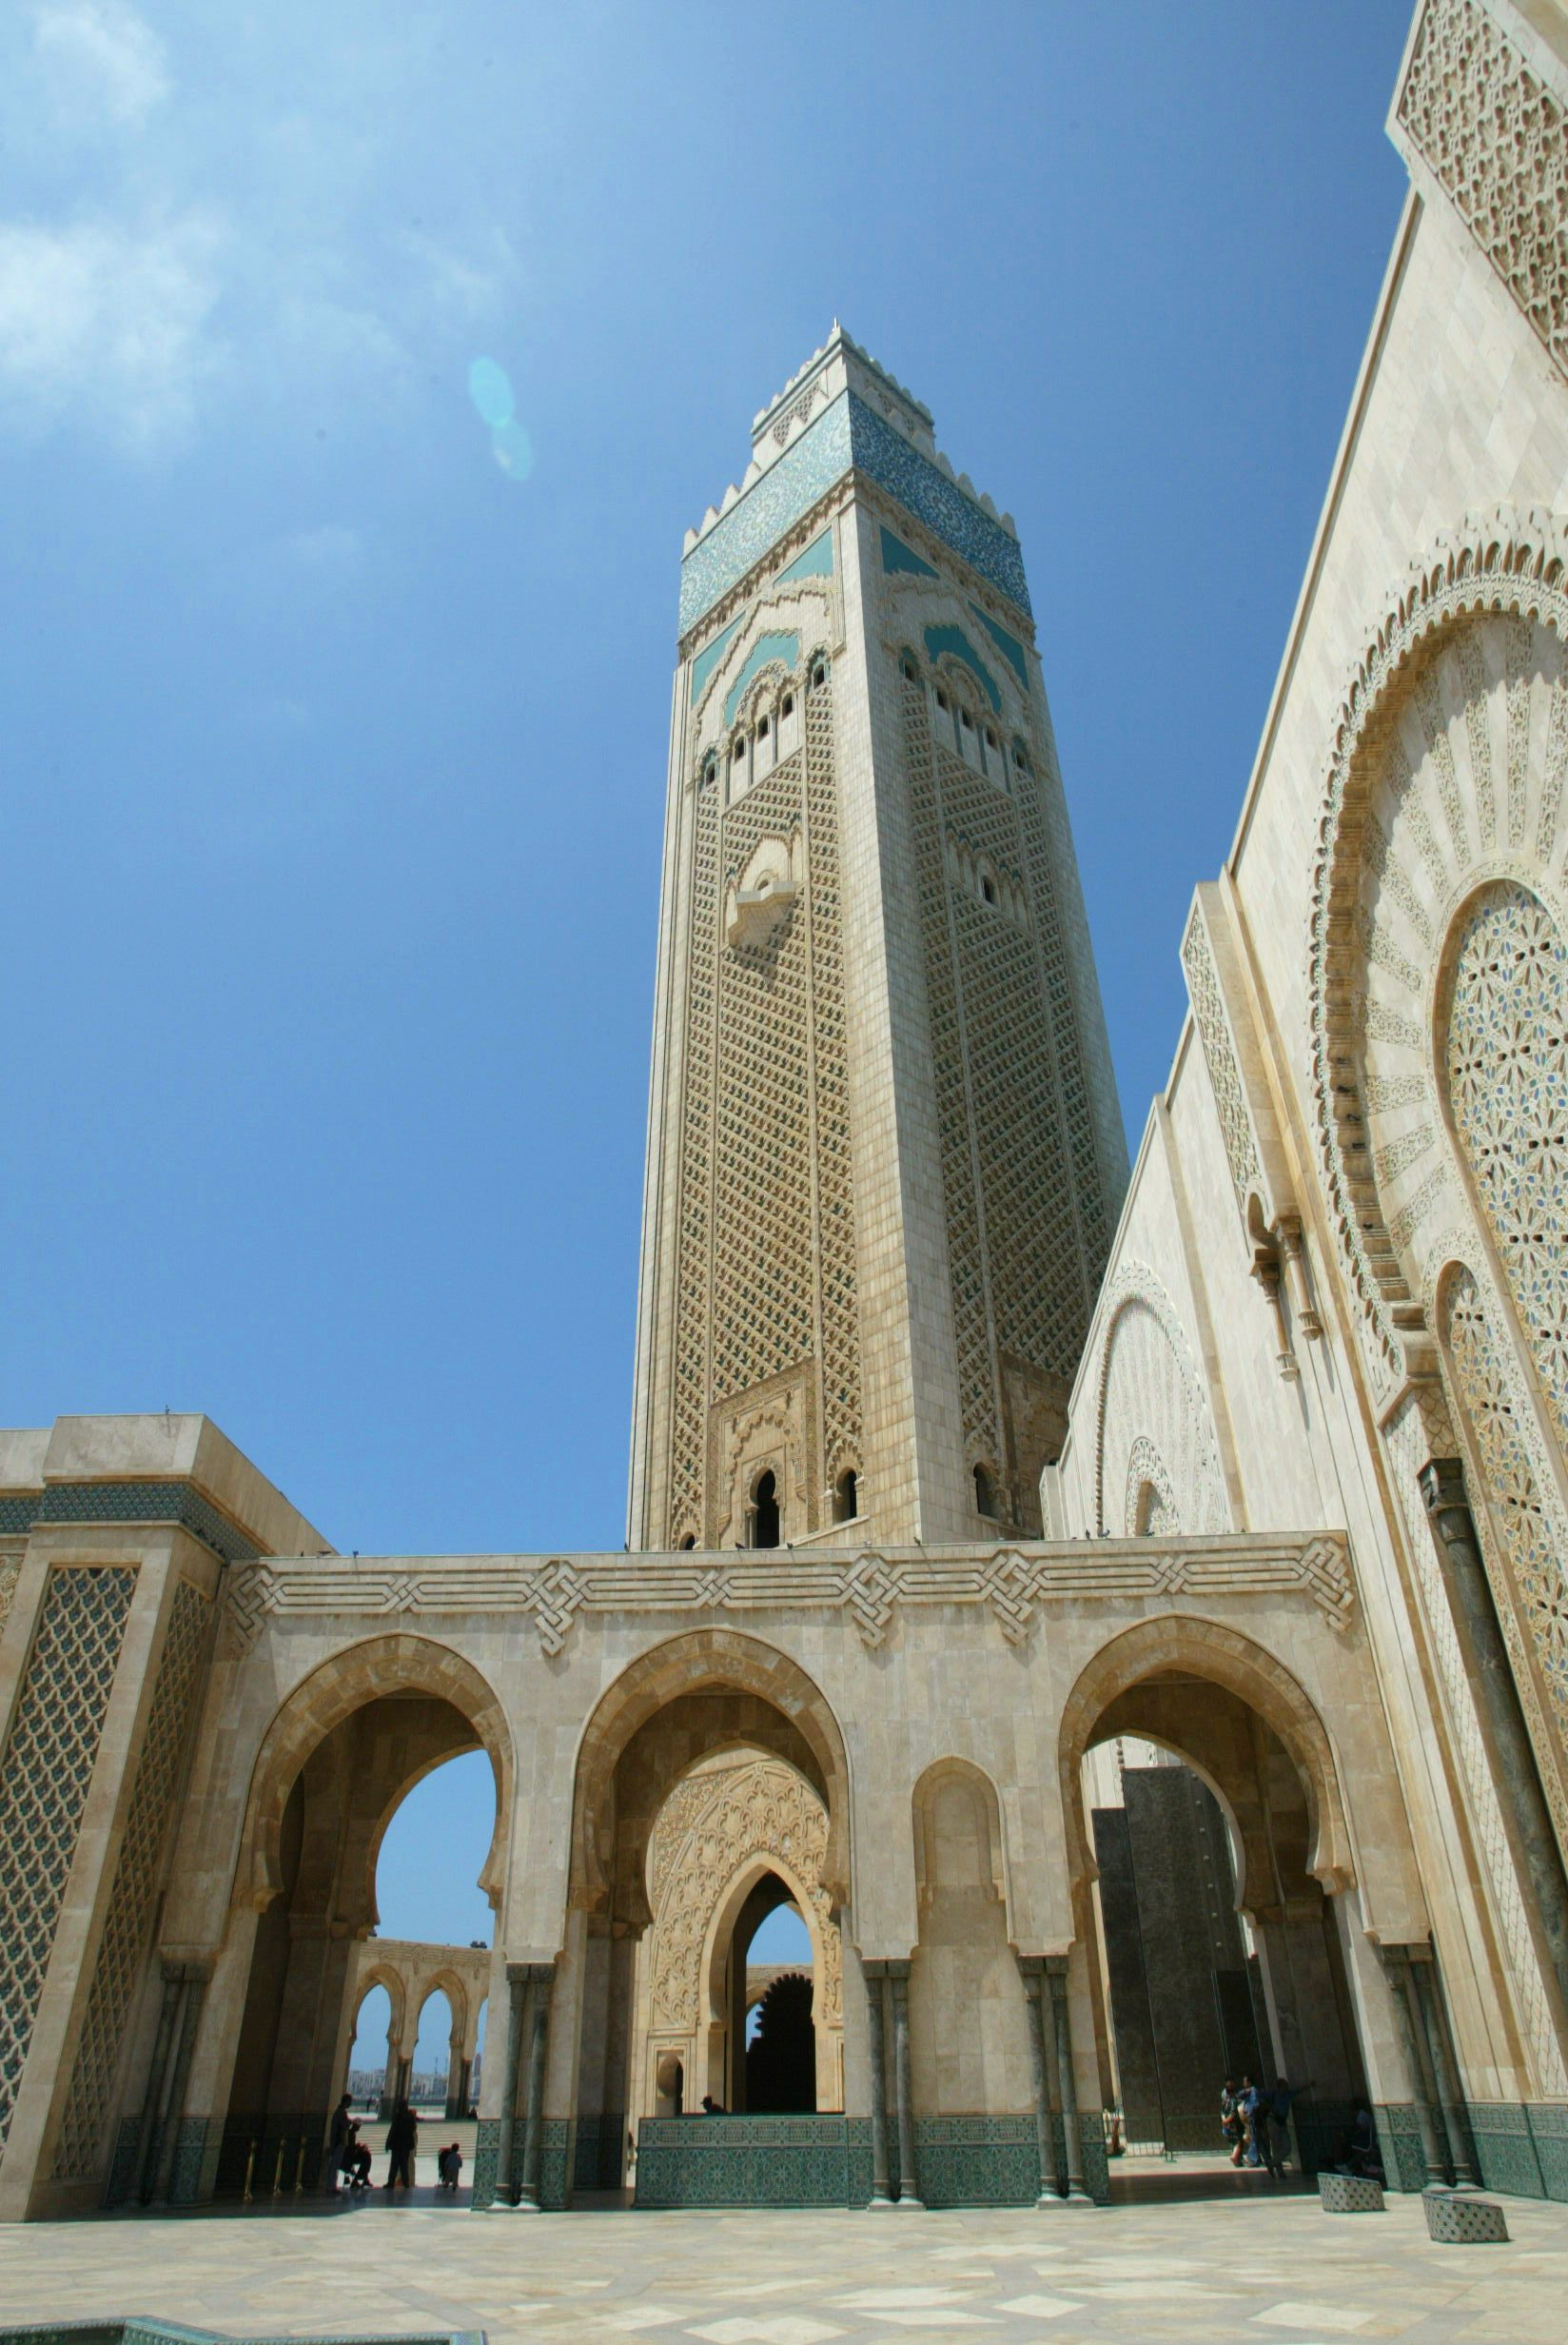 Casablanca, Morocco Mosque is one of many things to do in Morocco